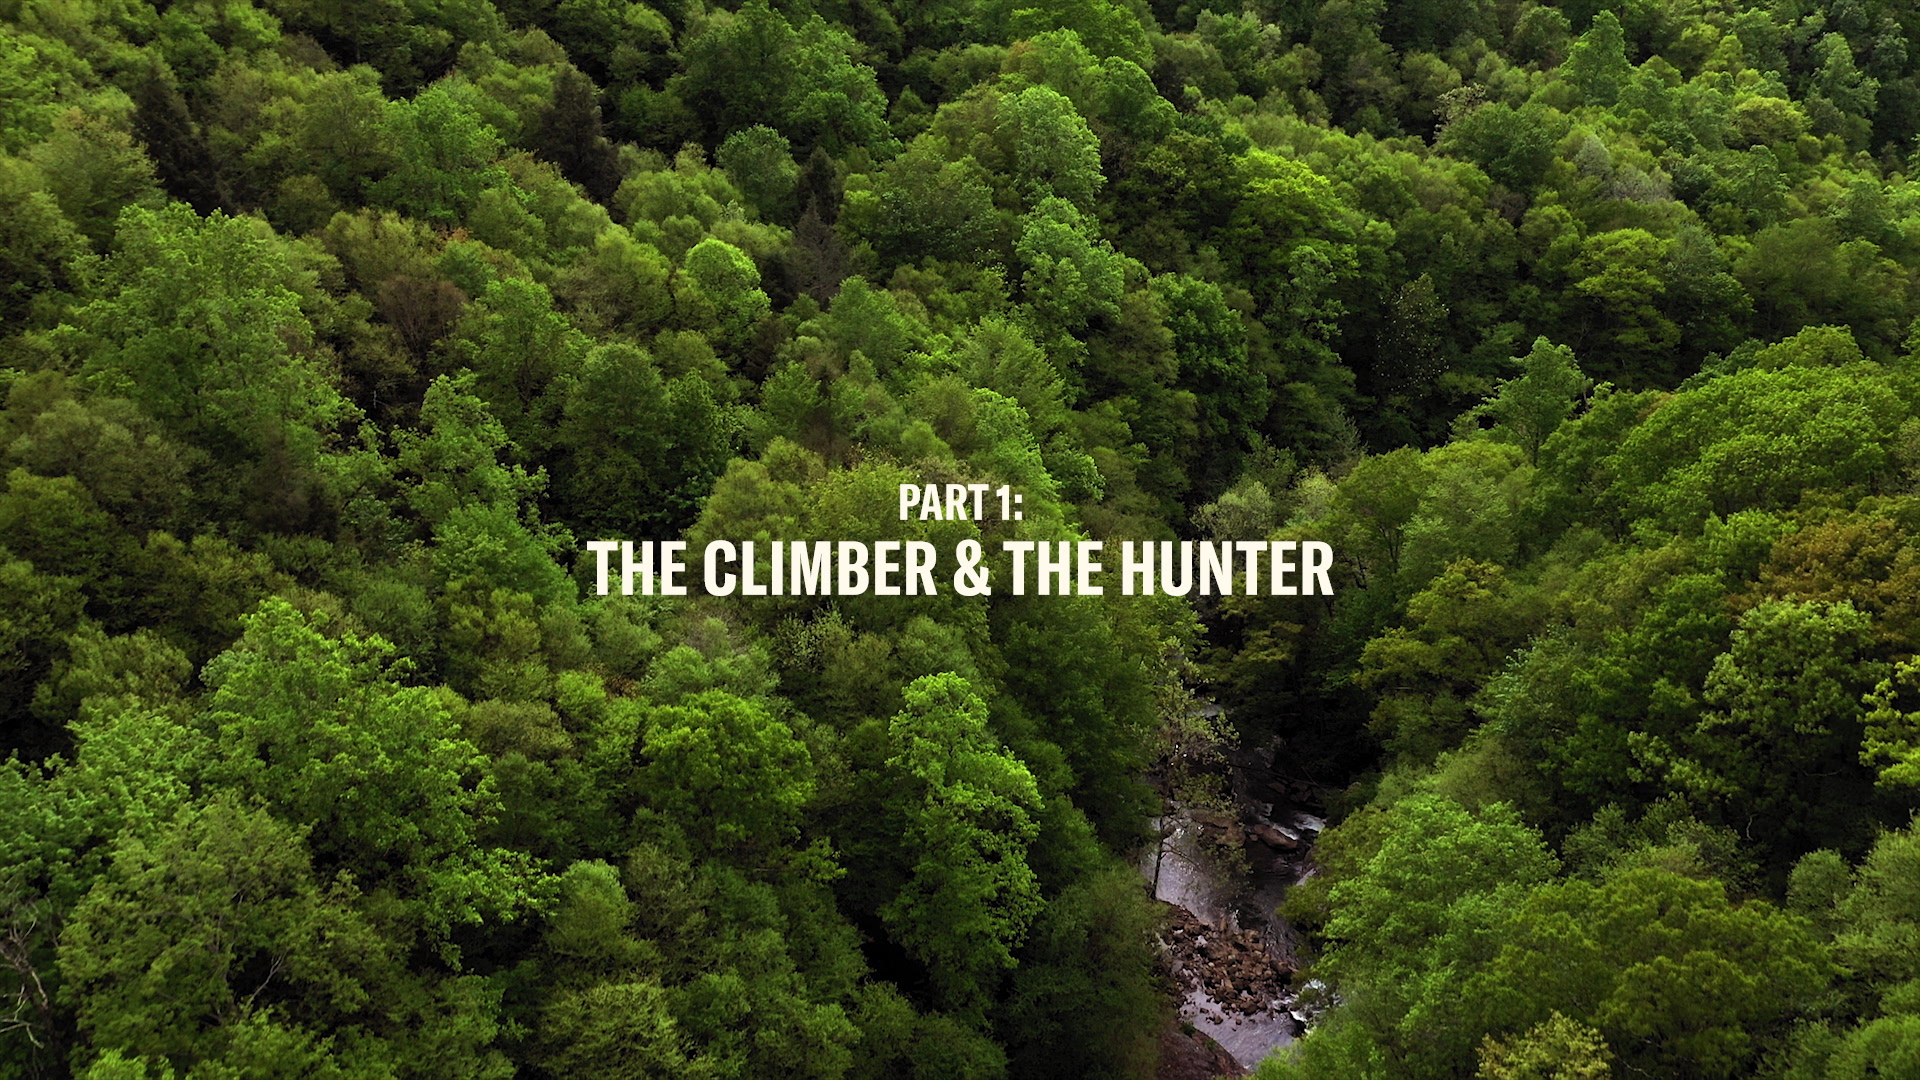 THE CLIMBER & THE HUNTER